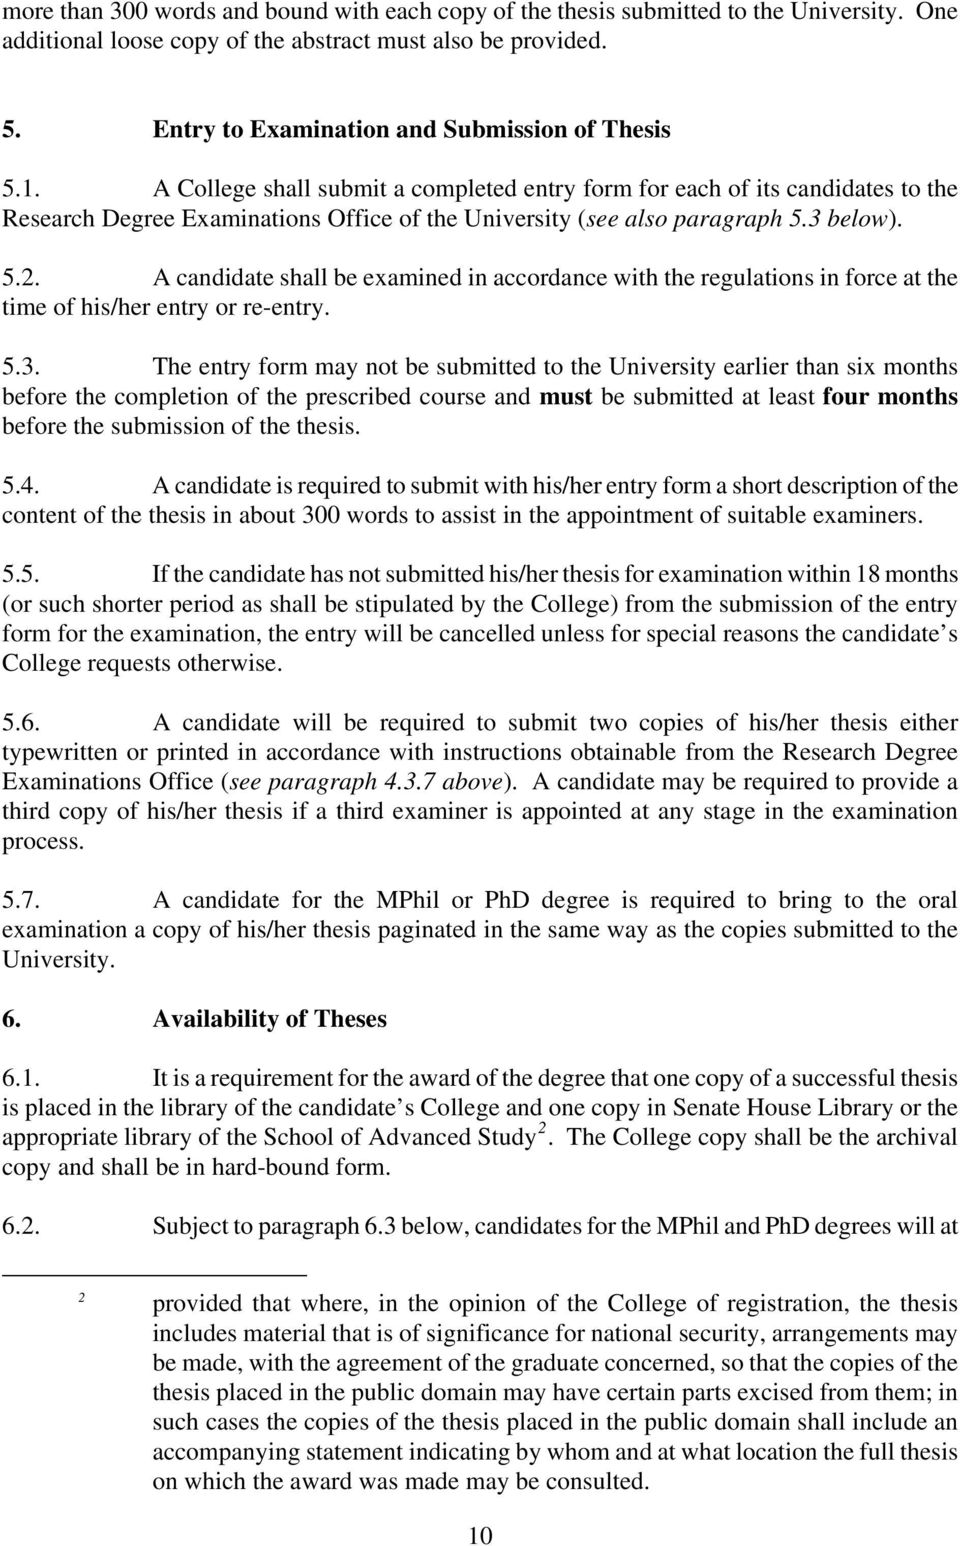 A College shall submit a completed entry form for each of its candidates to the Research Degree Examinations Office of the University (see also paragraph 5.3 below). 5.2.